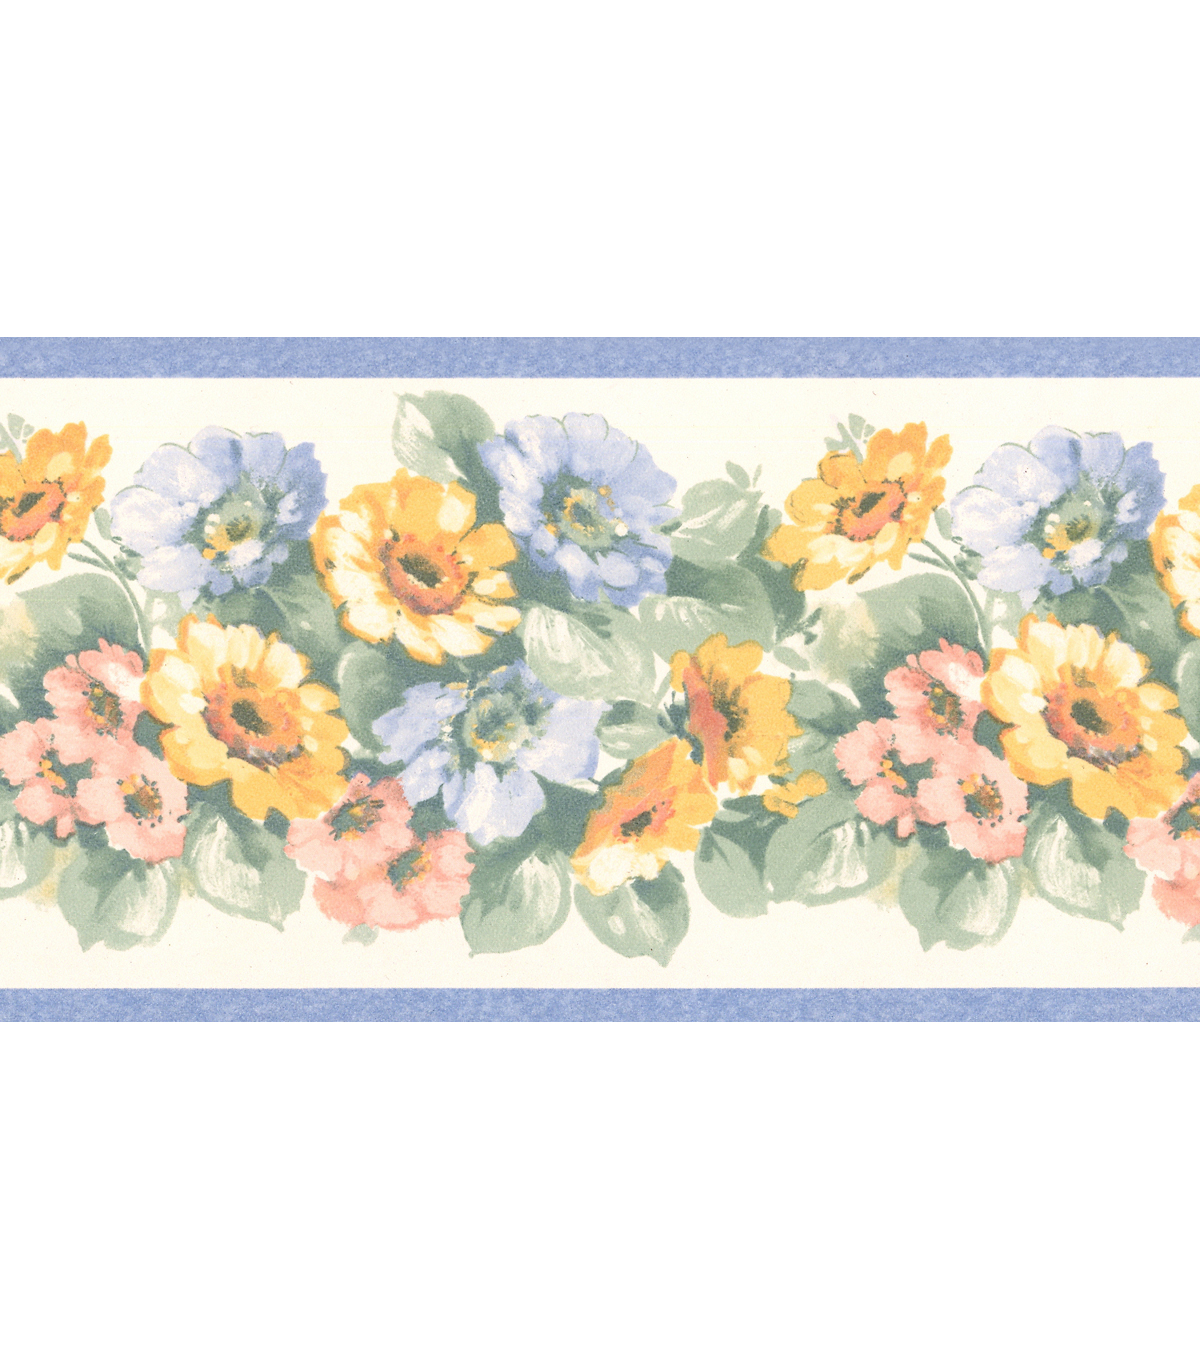 Maryanne Periwinkle Floral Garden Wallpaper Border Sample